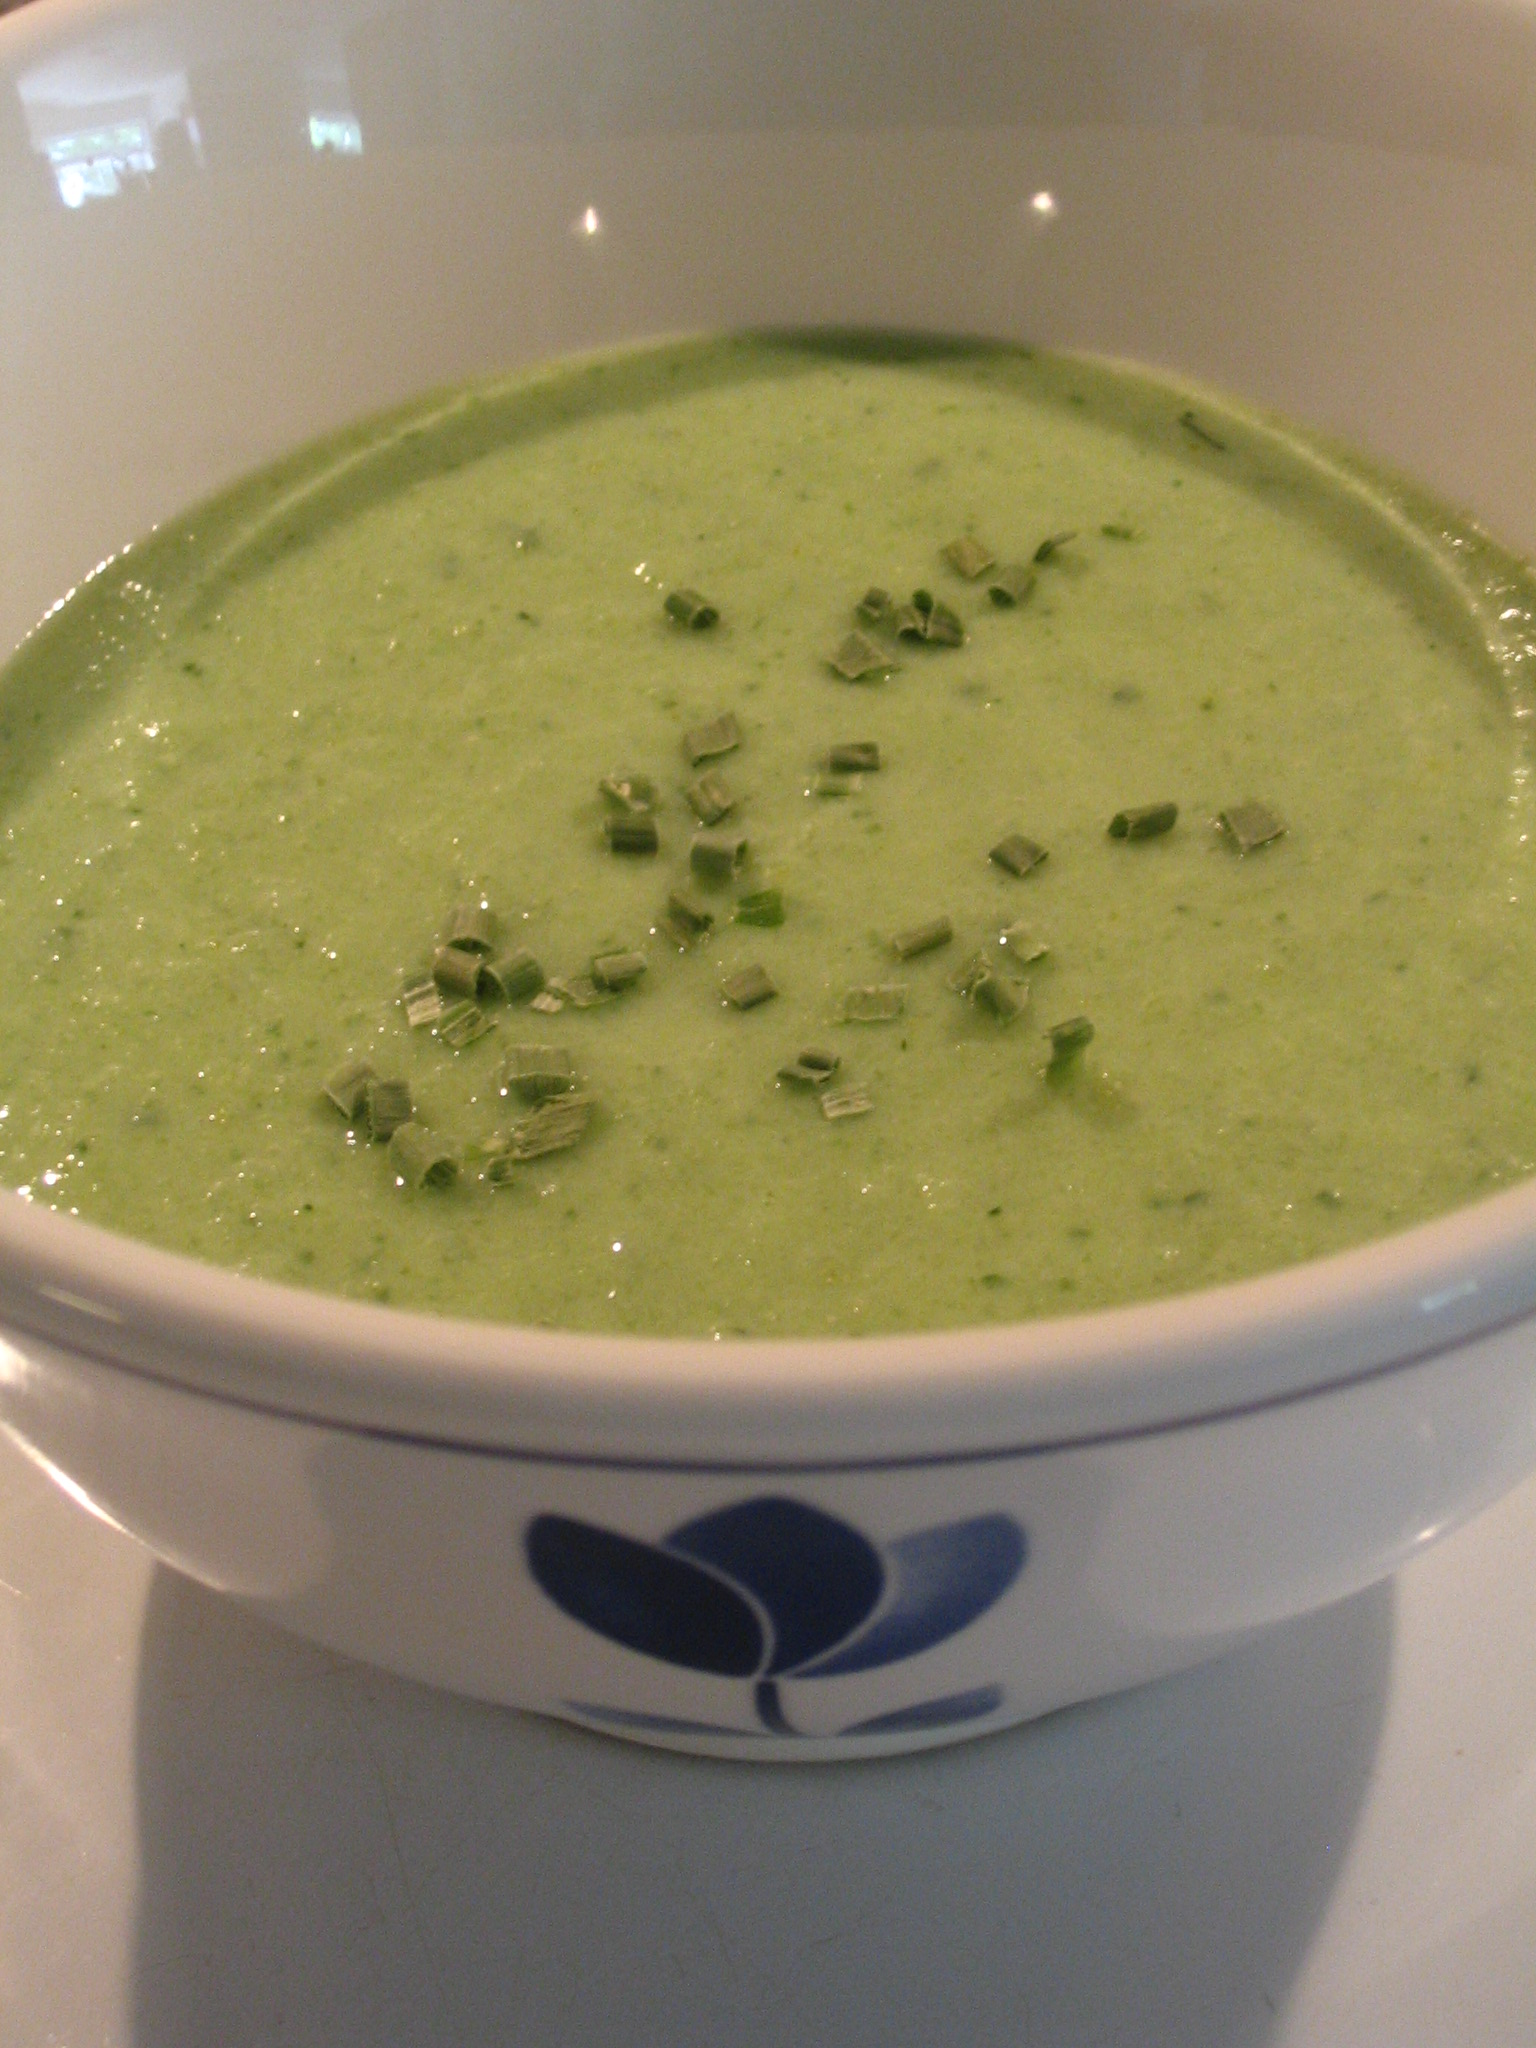 (c)2009 Em at https://diabetesdietdialogue.wordpress.com Spring Green Kefir Soup